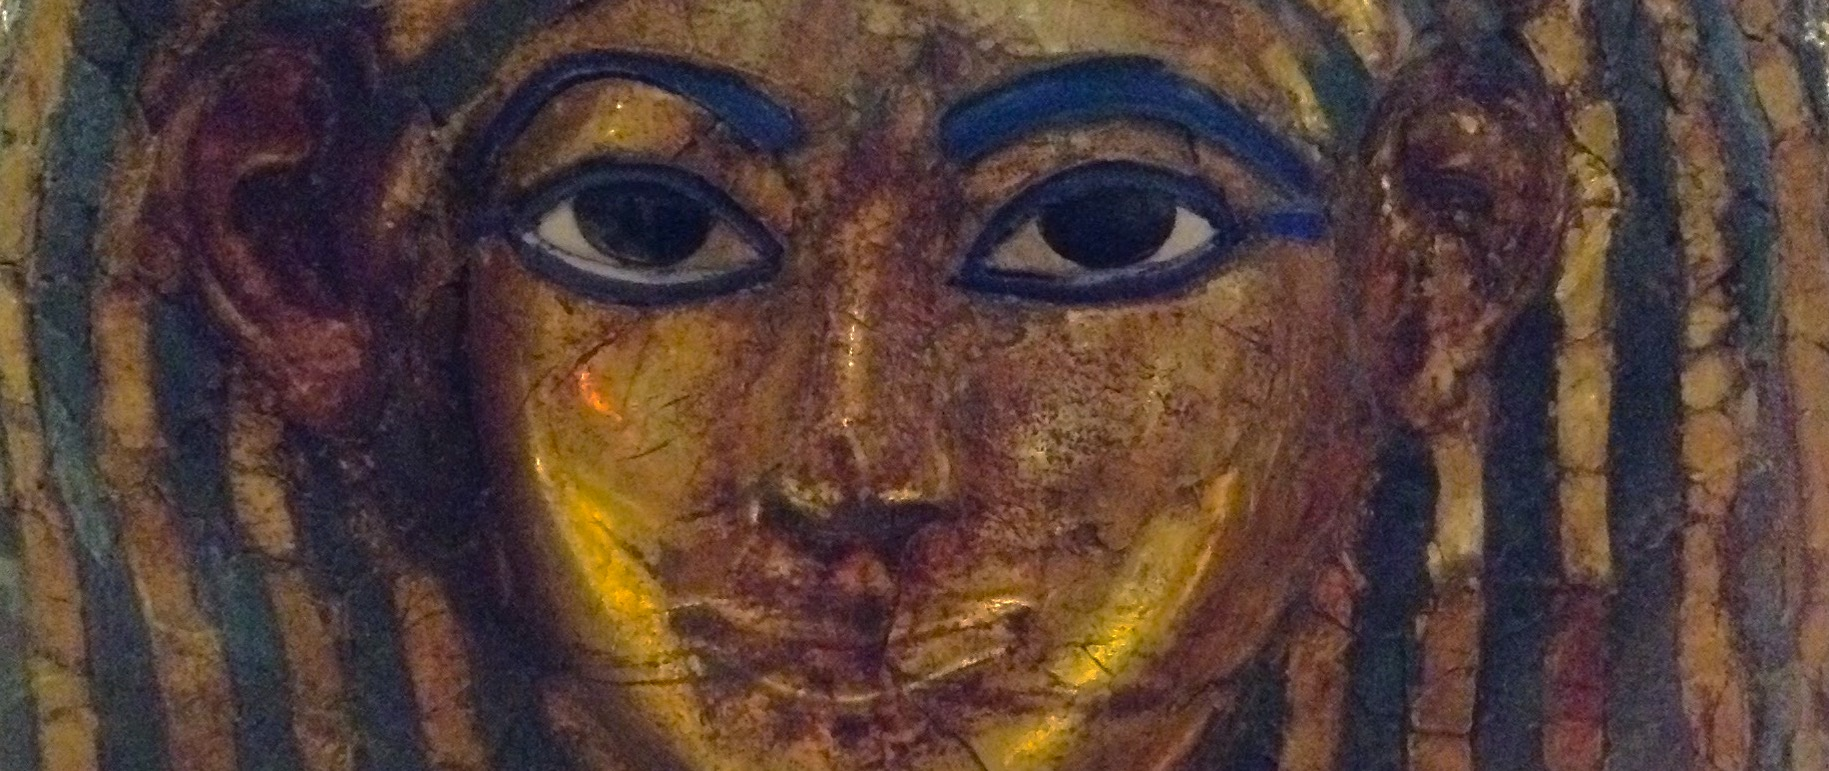 From the Egyptian Museum in Turin (photo RYC)